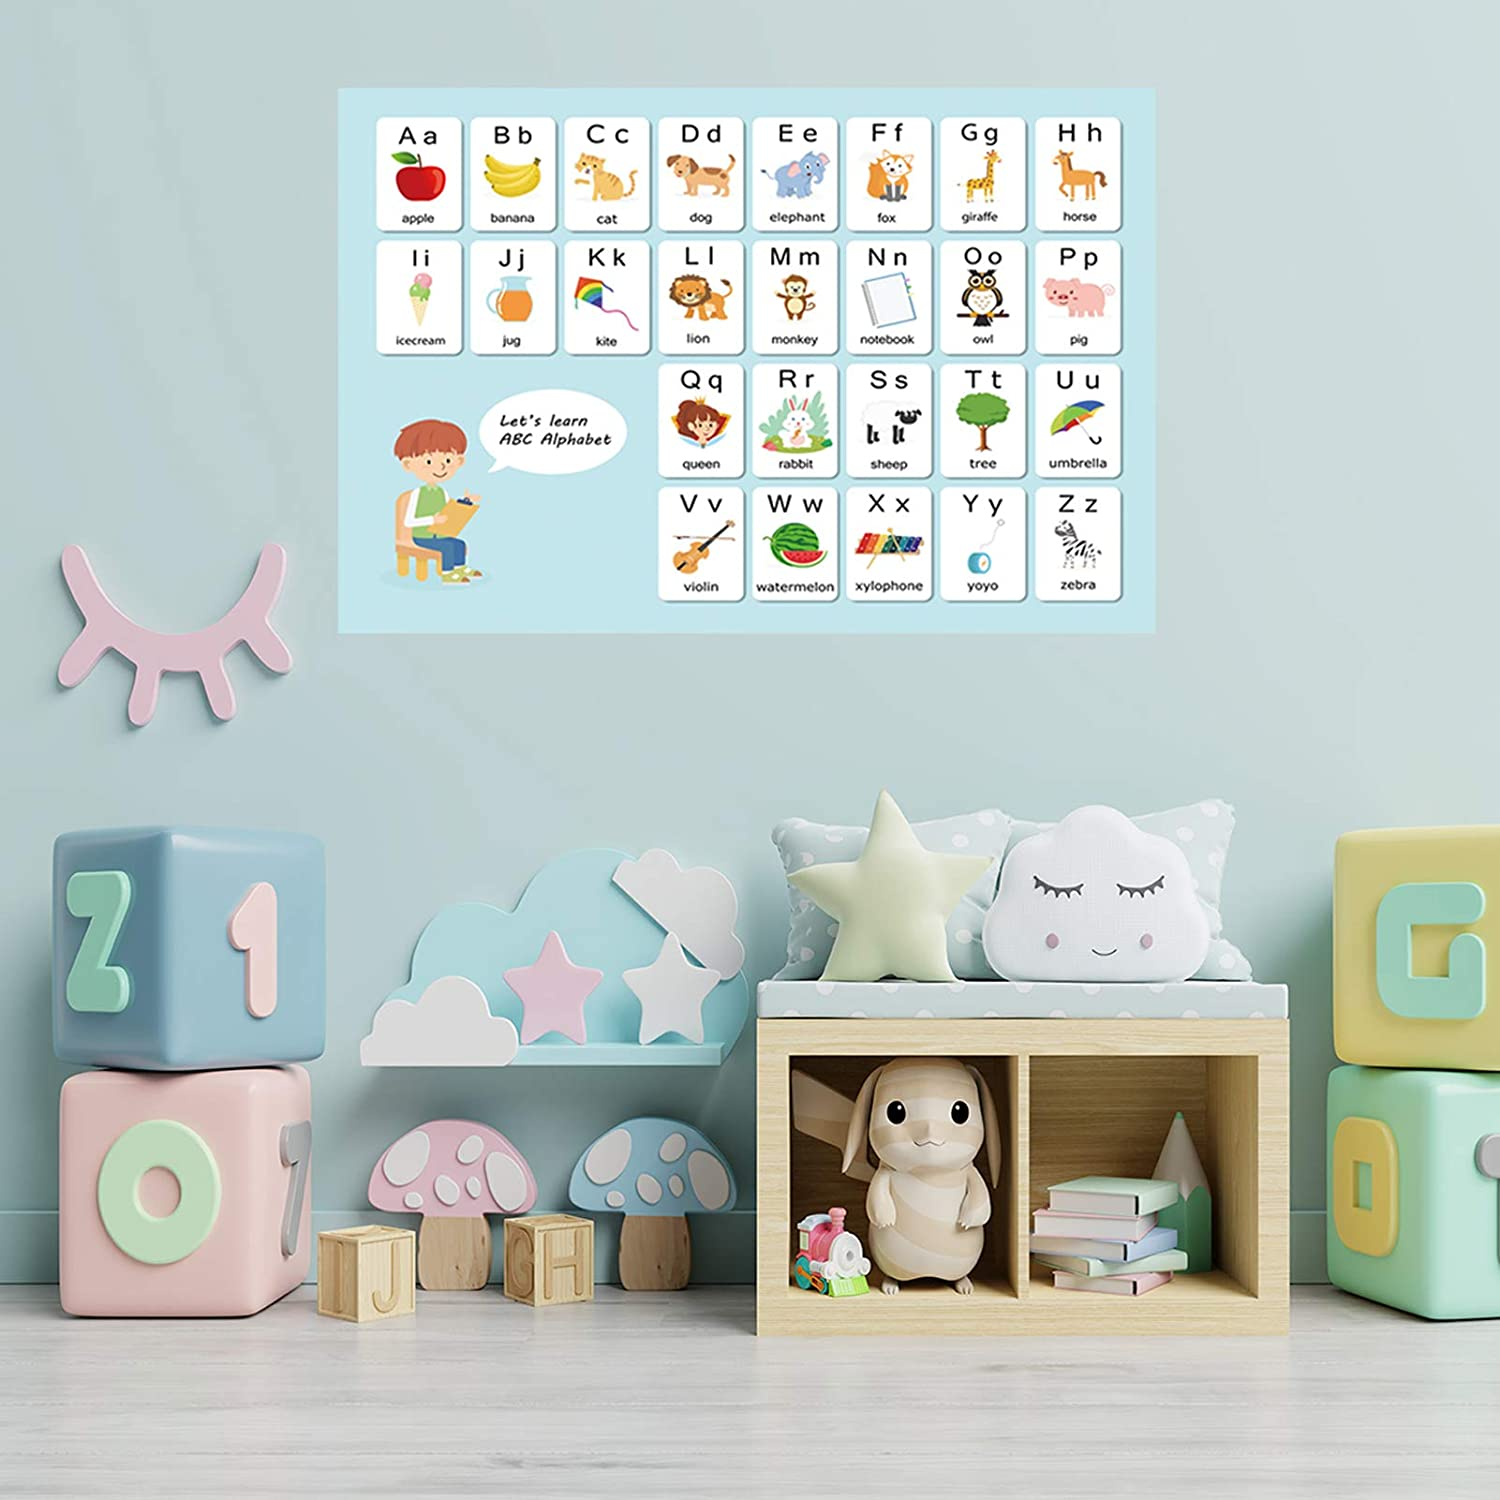 ABC Alphabet Kids Wall Decals, TANOKY Removable Educational Letters Wall Stickers, Eco-Friendly Peel and Stick Learning Wall Decals Art Decor for Kids Nursery Bedroom Living Room